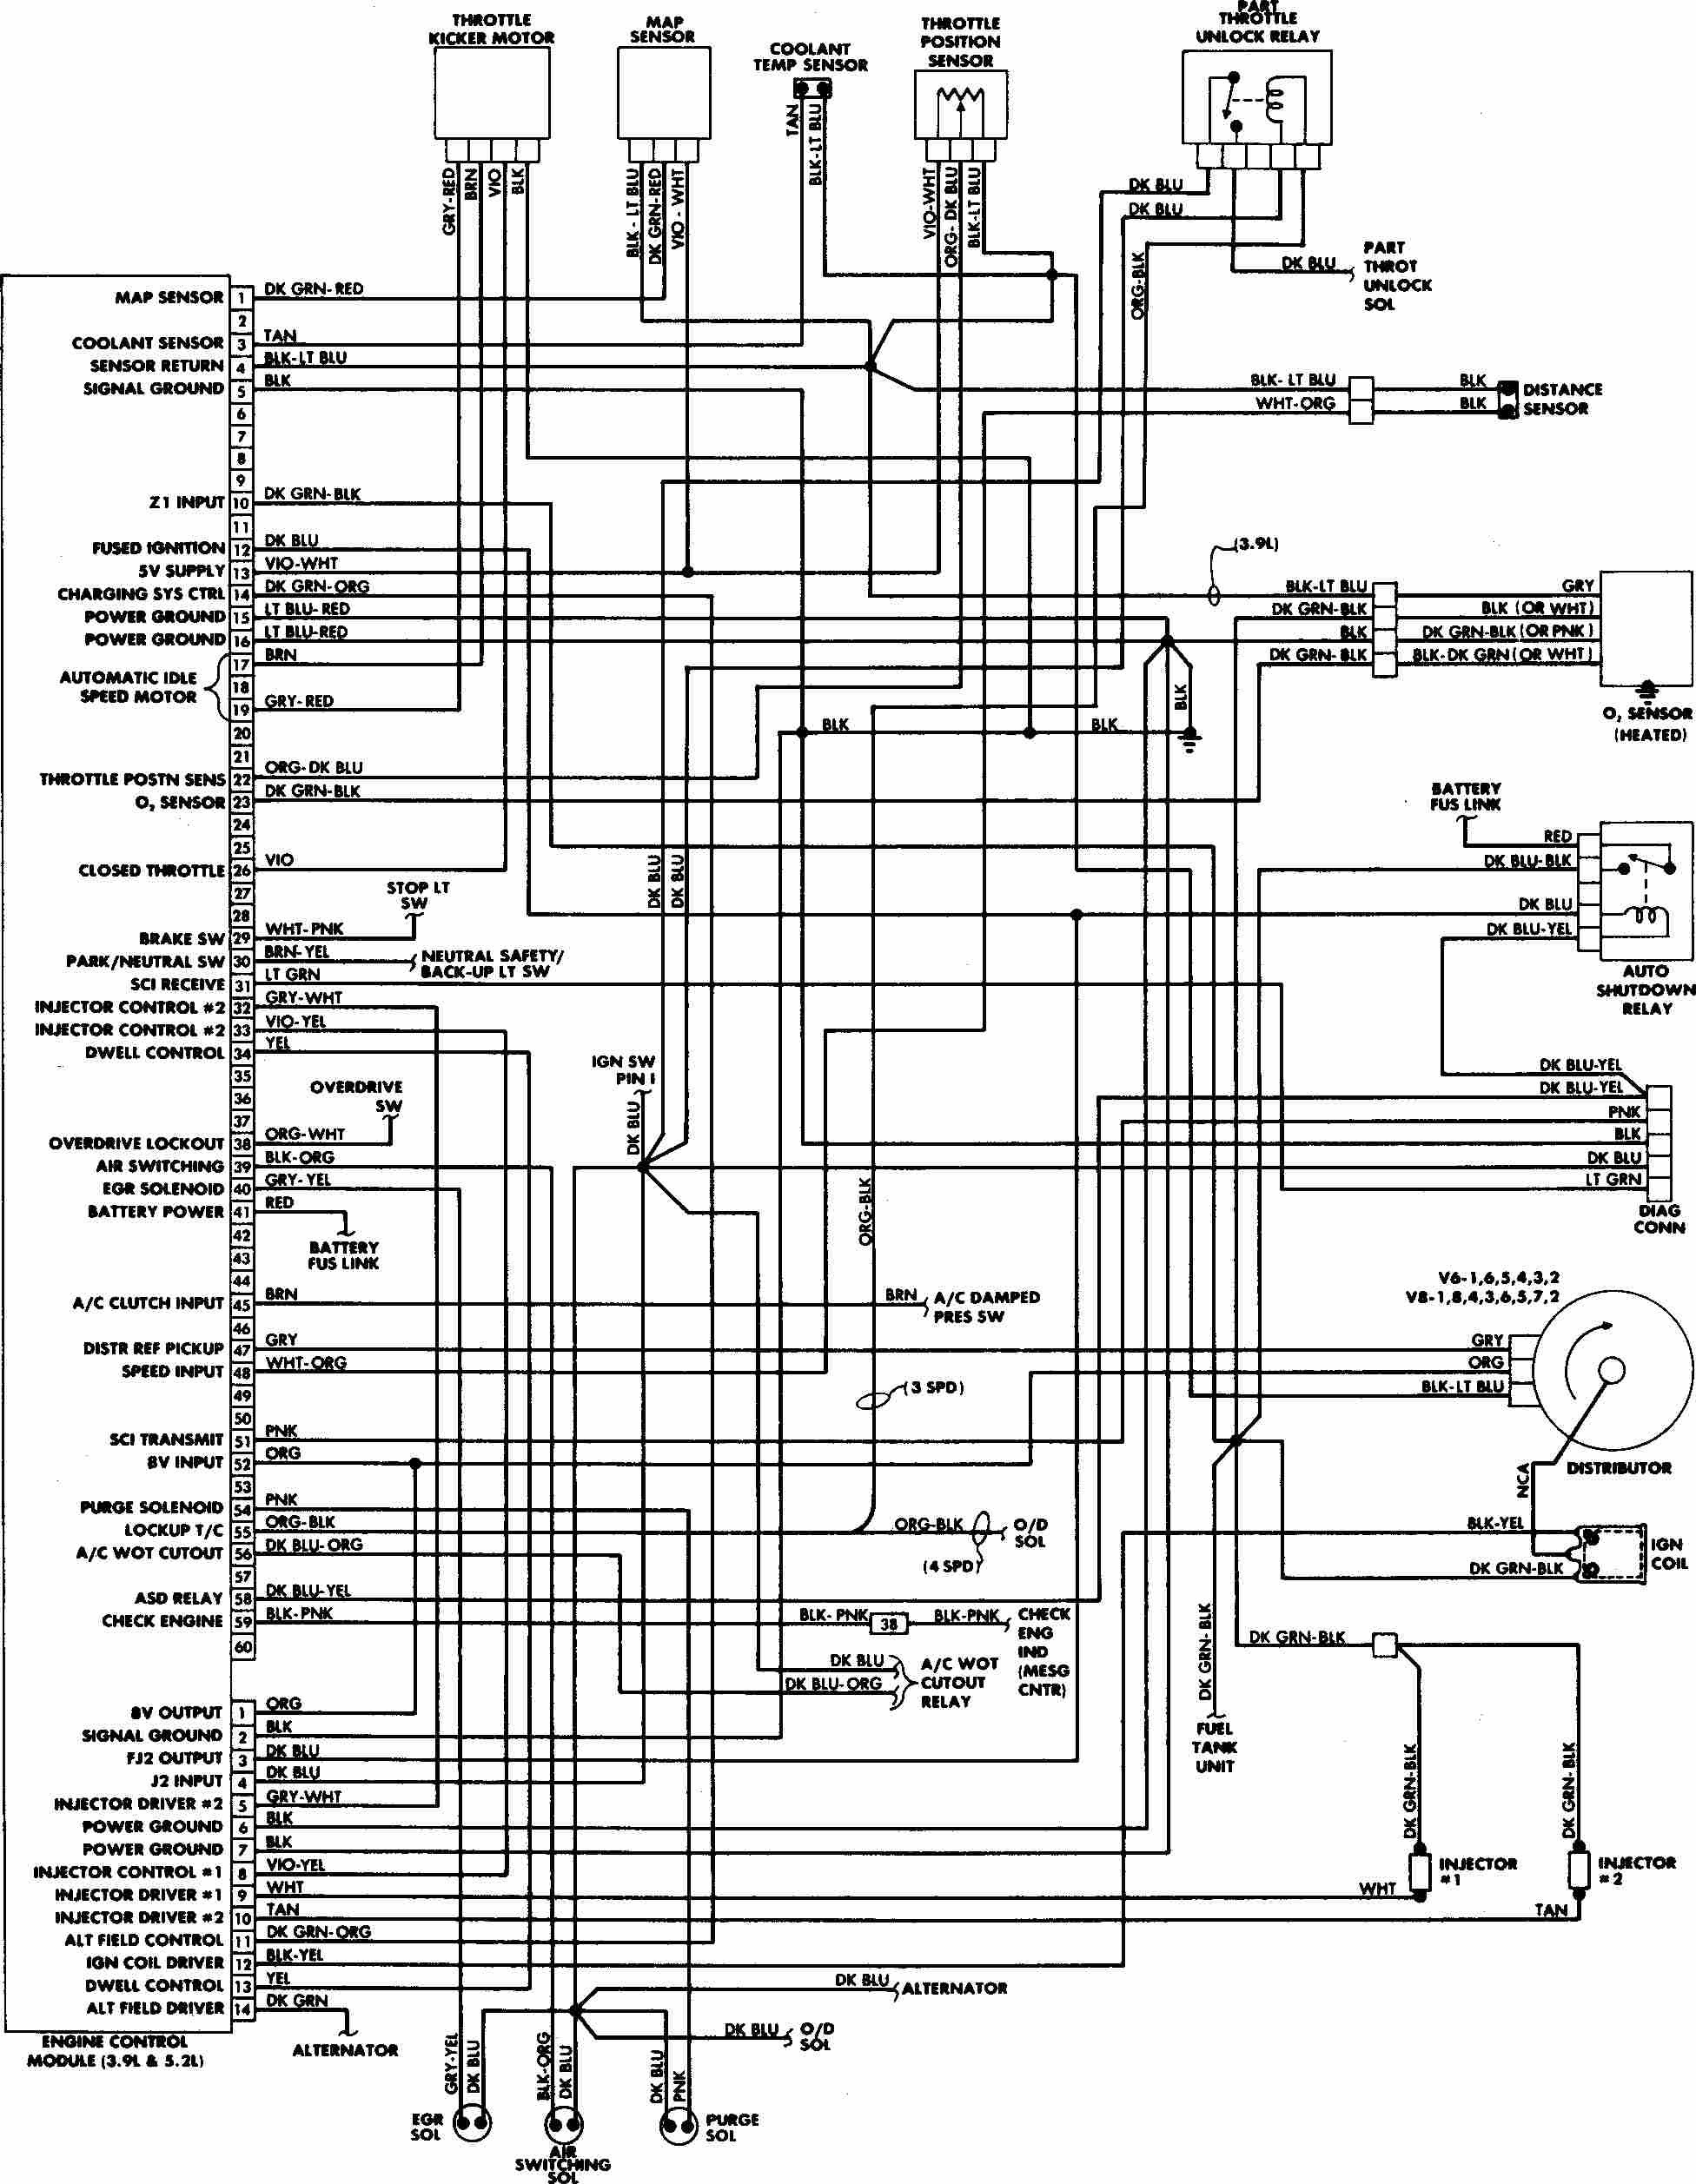 1998 jeep wrangler headlight wiring diagram whirlpool ultimate care ii washer parts fog lights harness